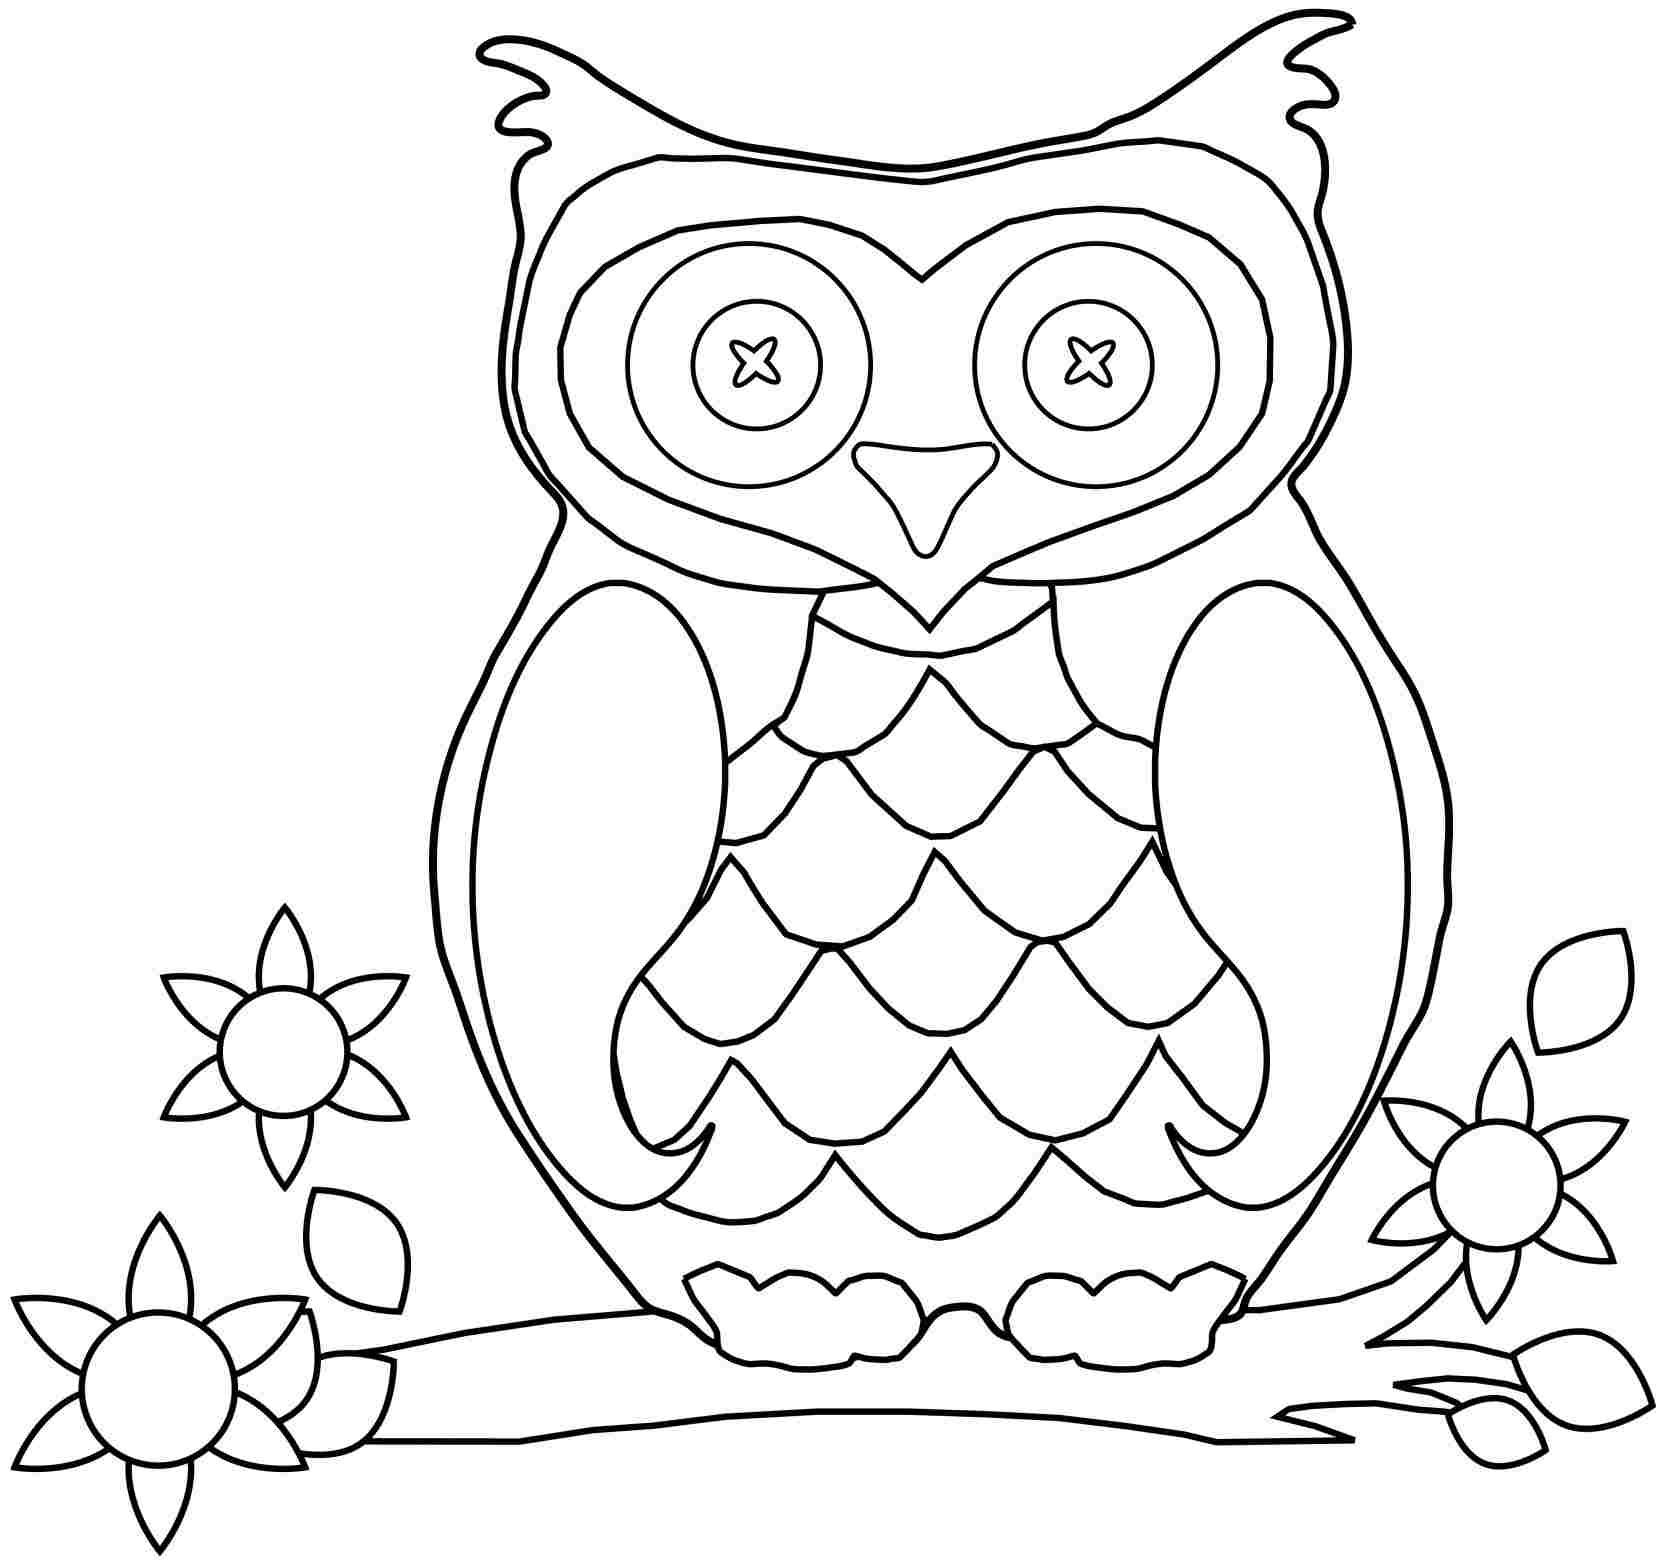 Printable Owl Picture Owl Printable Coloring Pages Owl